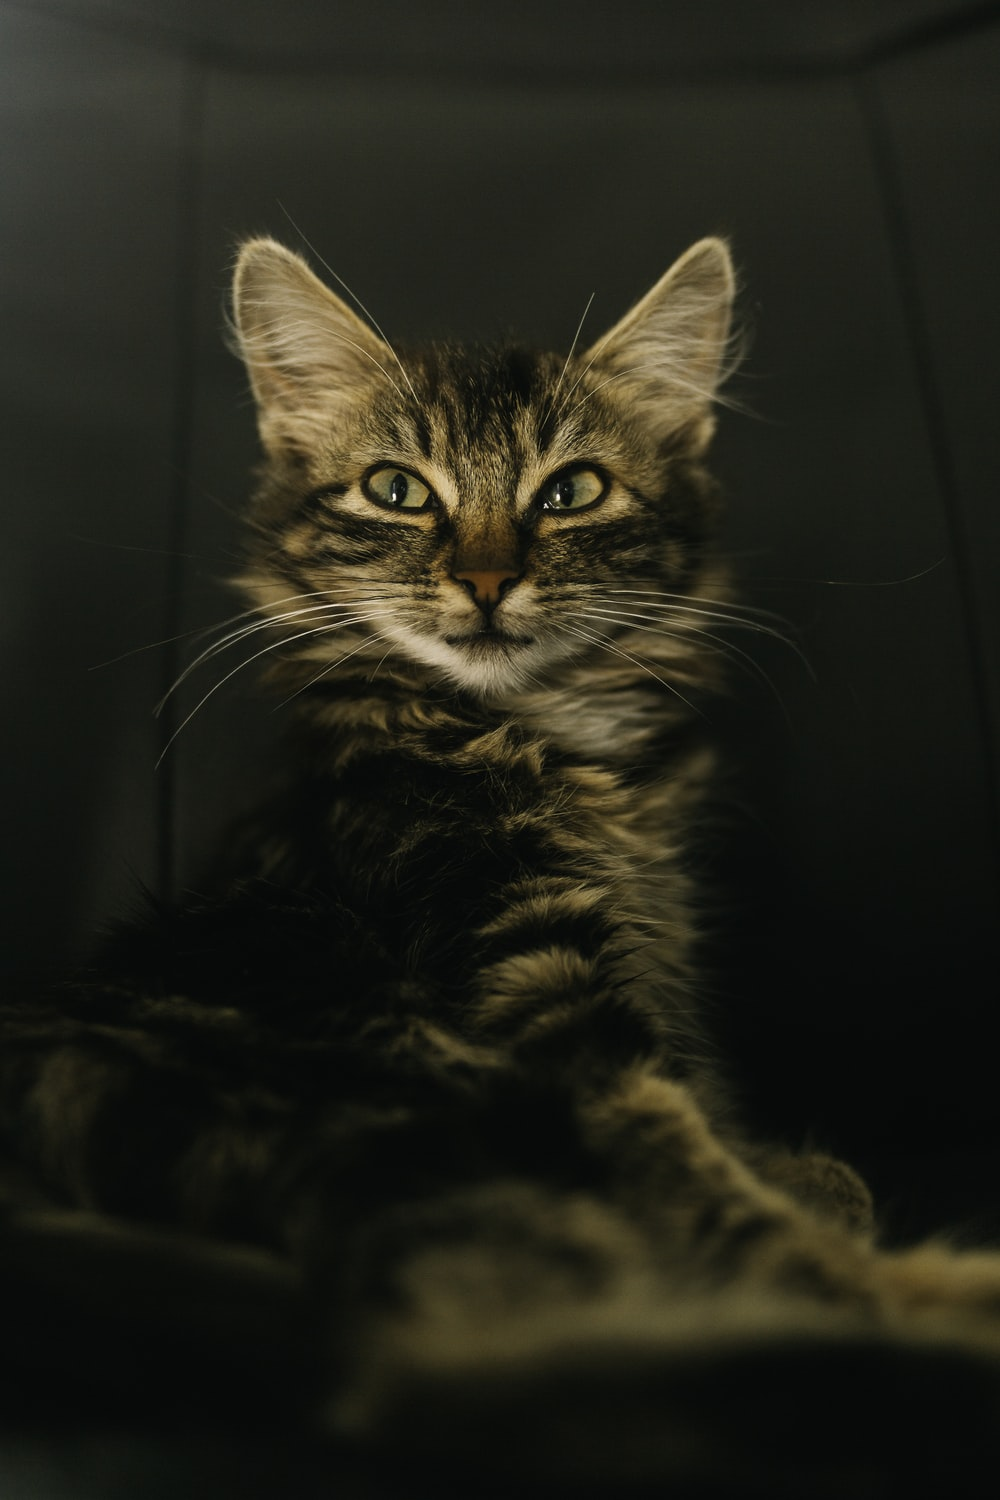 brown tabby cat in grayscale photography